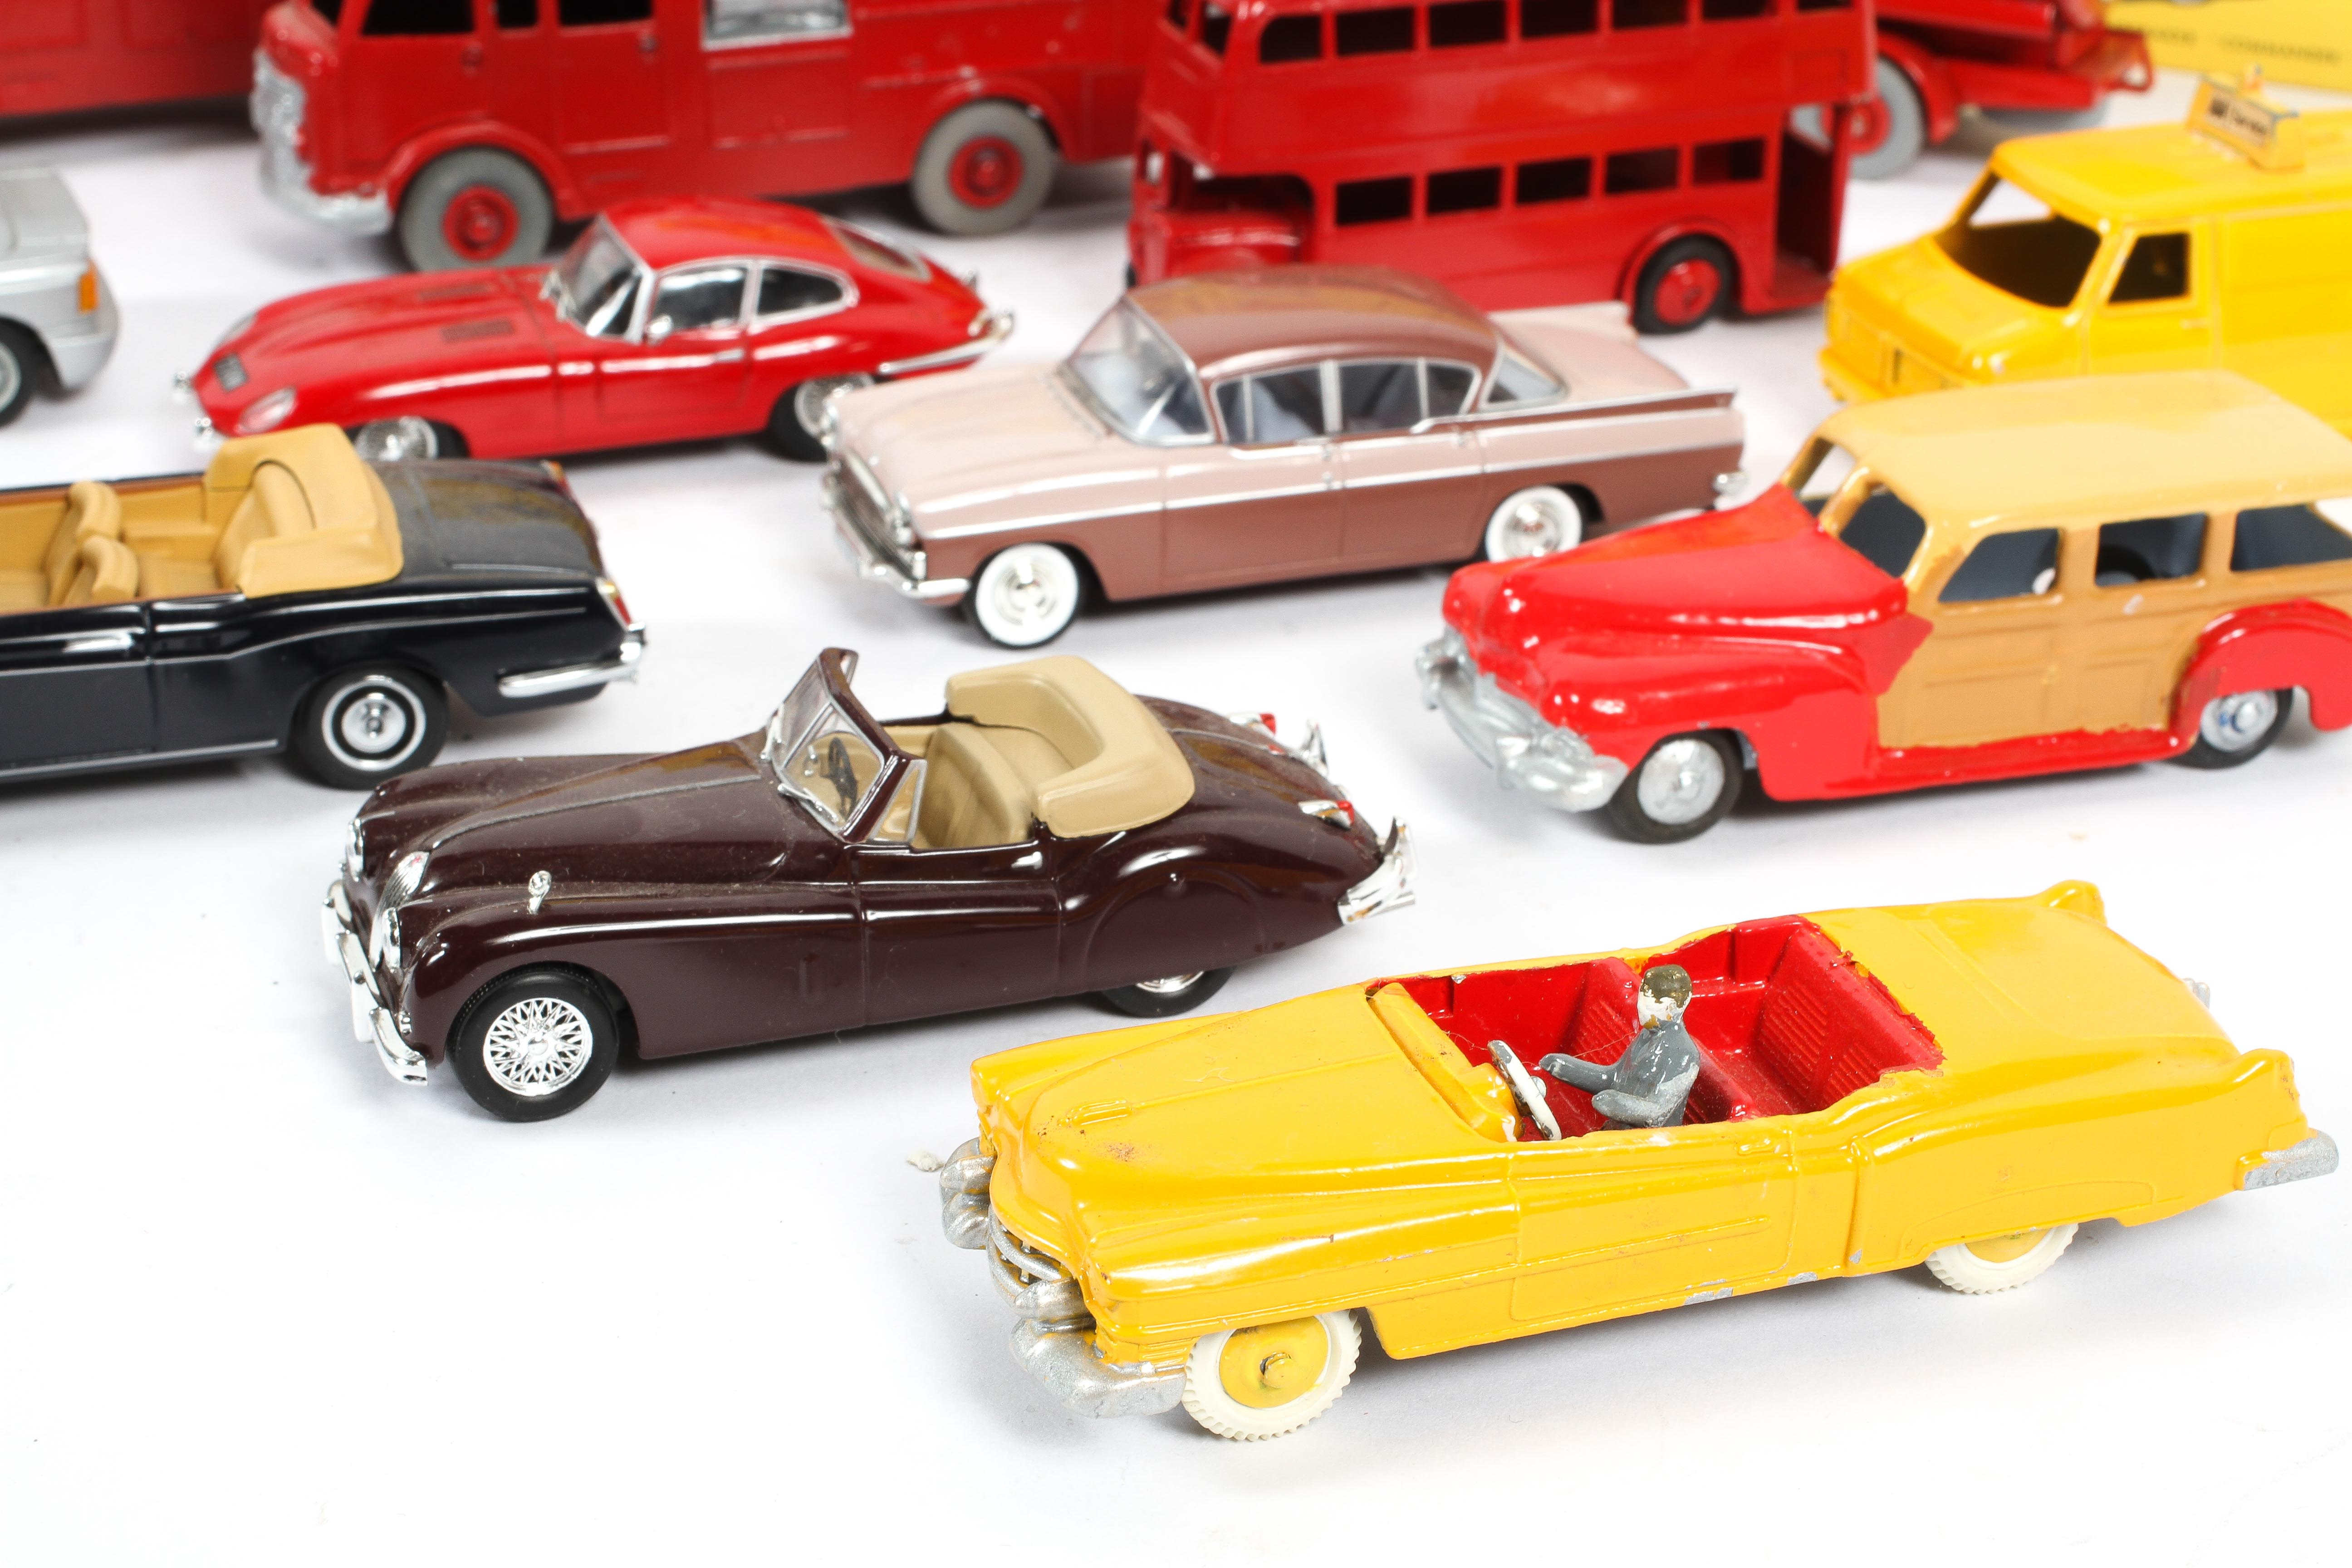 A collection of Dinky Toys in boxes, including: a Cabriolet Ford Thunderbird, an Aston Martin, - Image 3 of 3